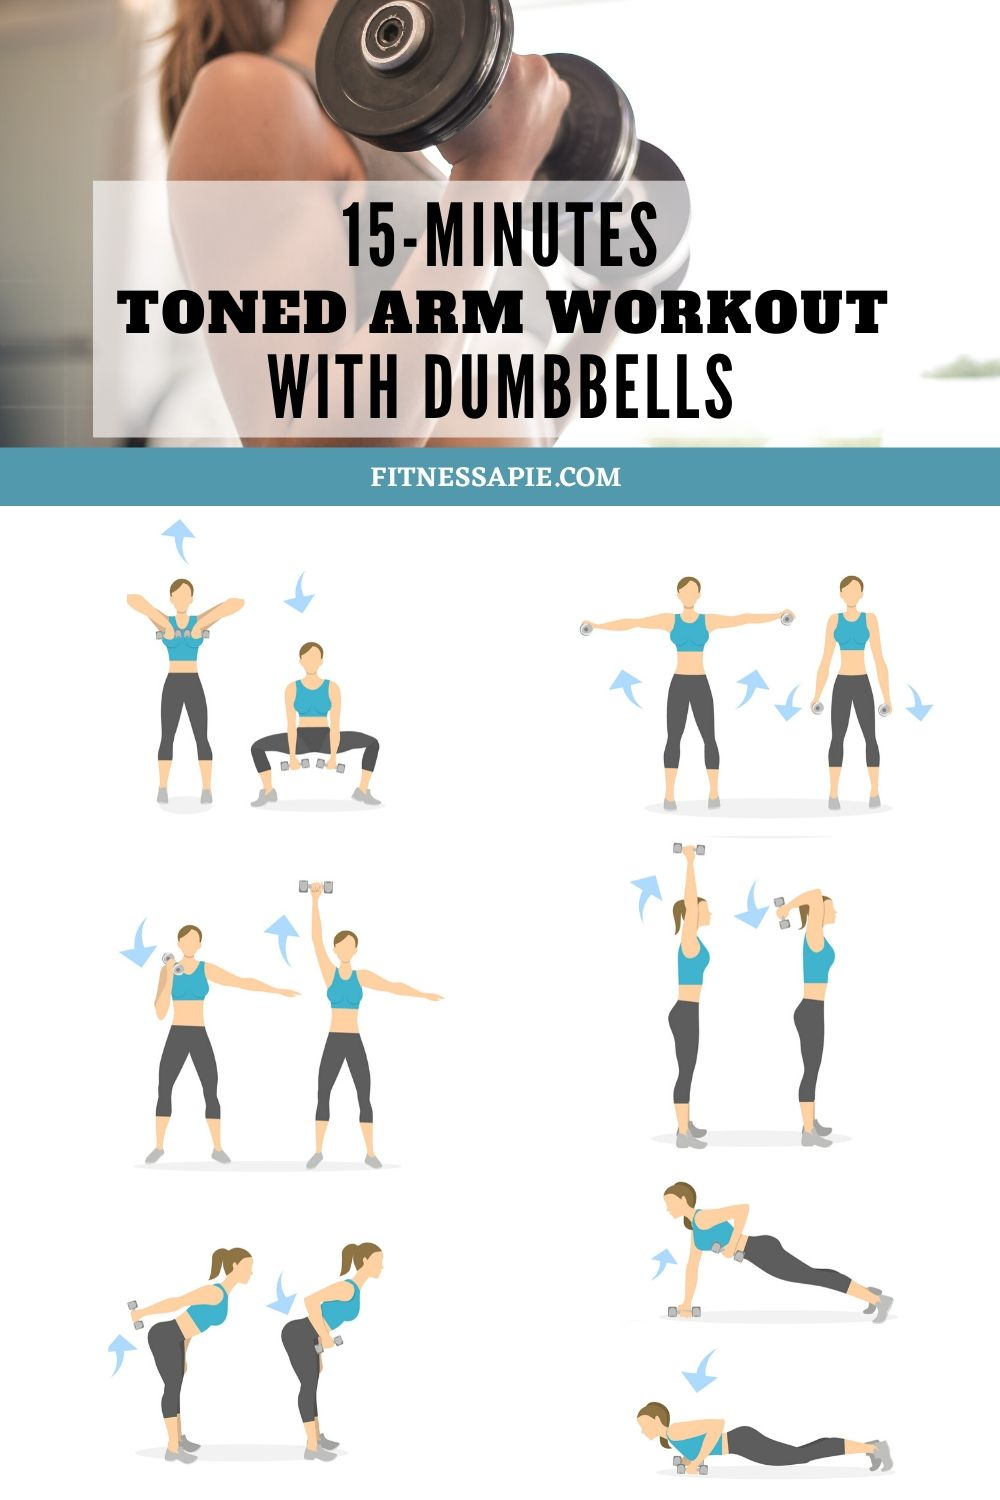 15-Minutes Toned Arm Workout With Dumbbells